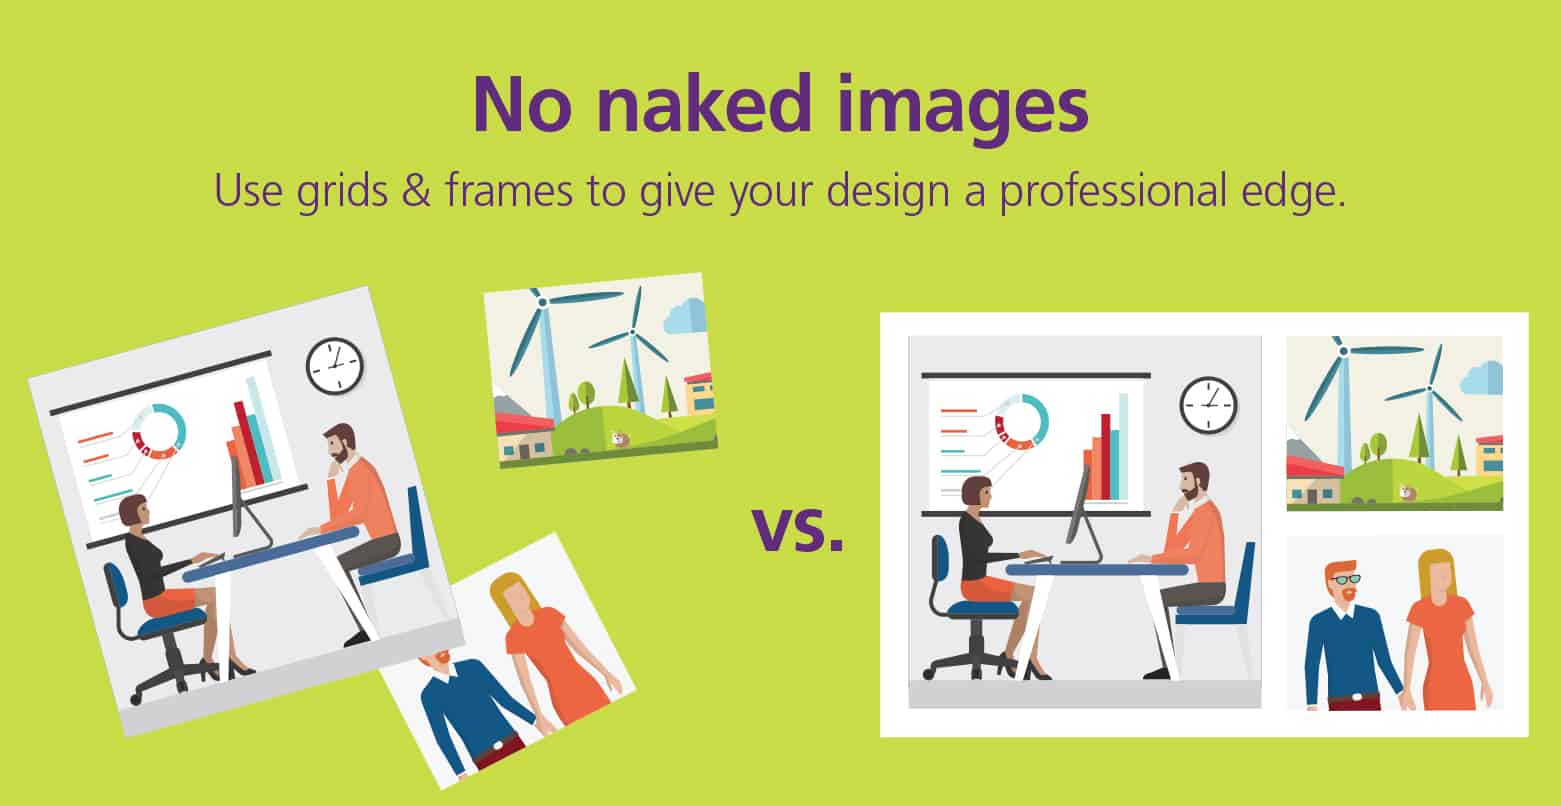 Graphic Design Tips: Use grids and frames